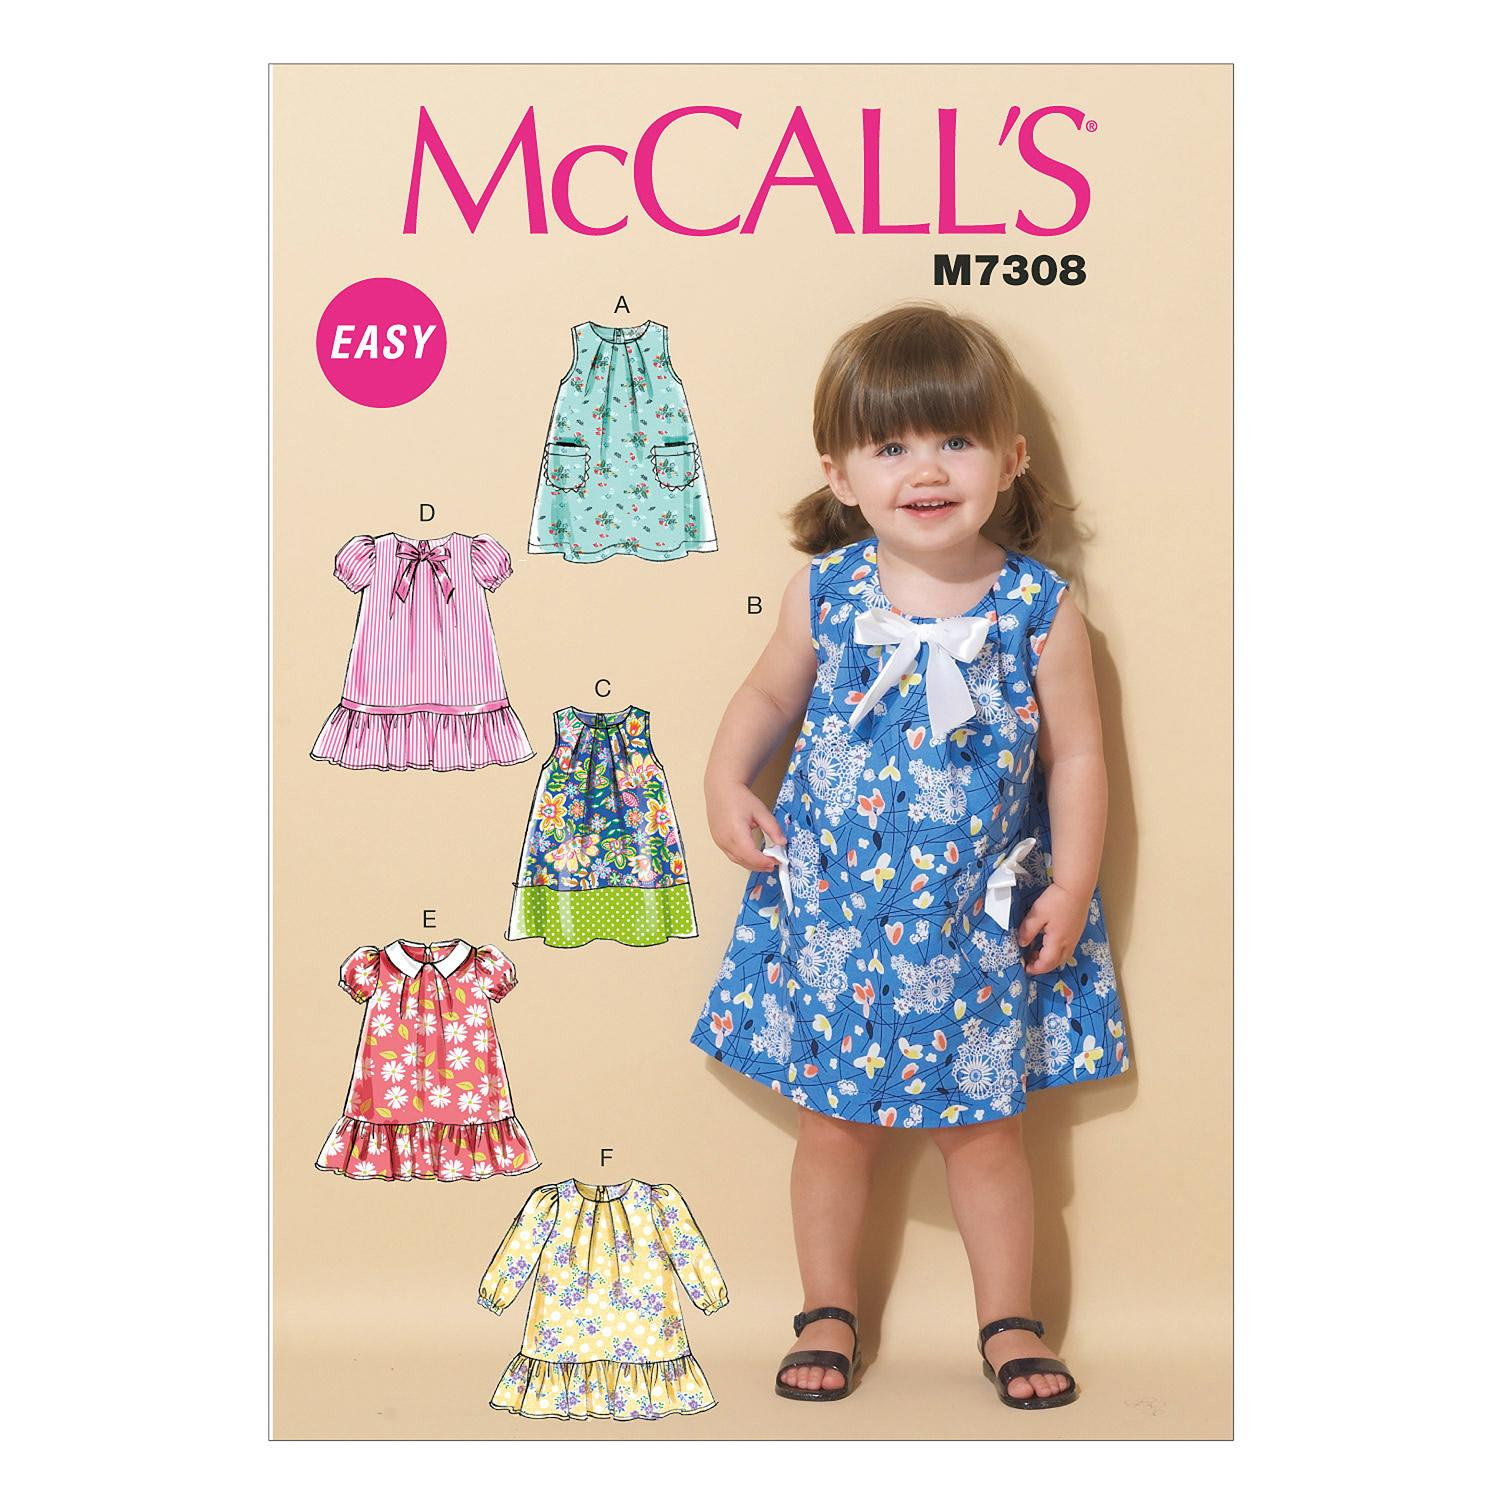 McCalls M7308 Infants/Toddlers